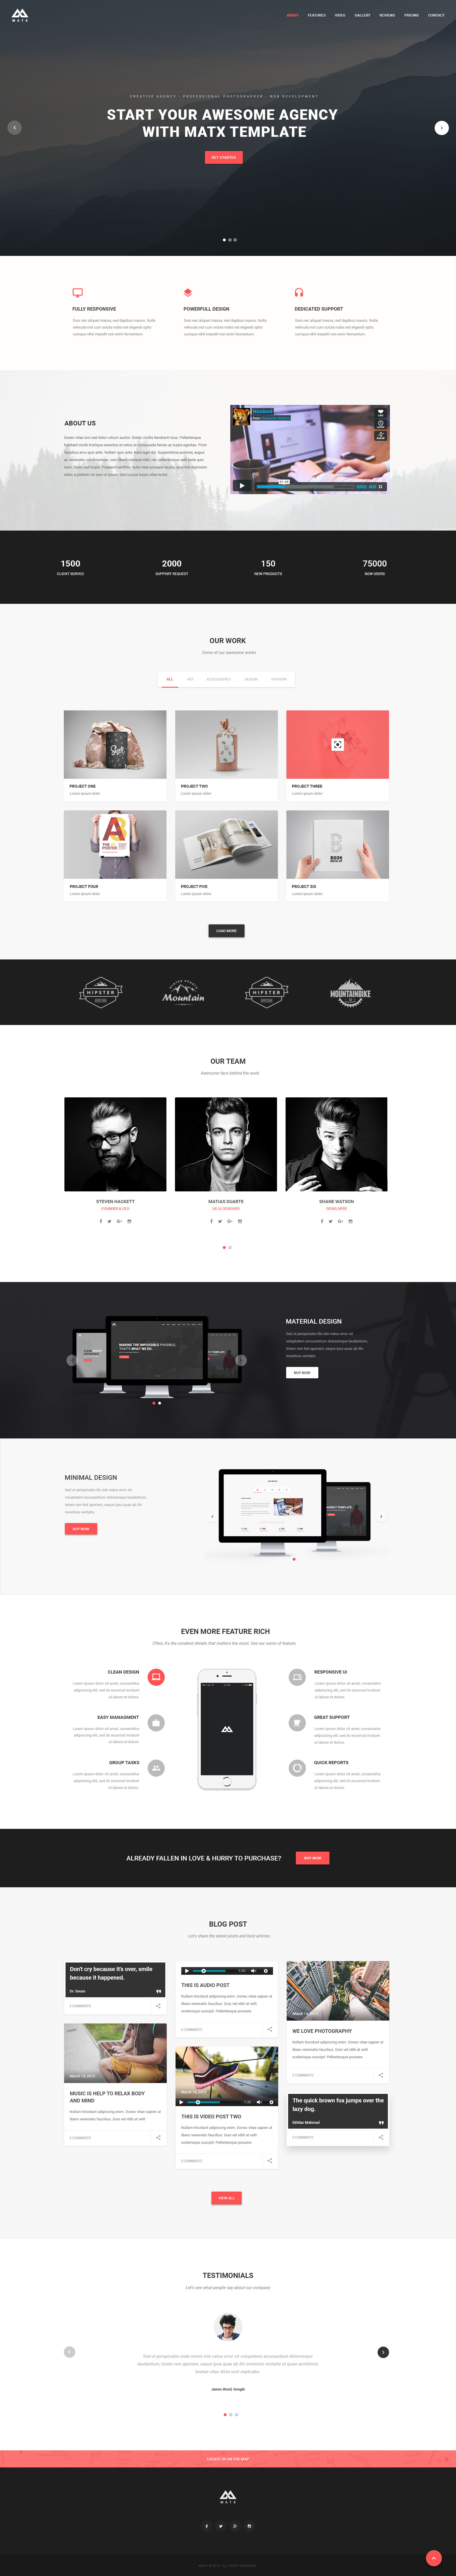 Matx material design agency template by coderpixel for Home design agency scp